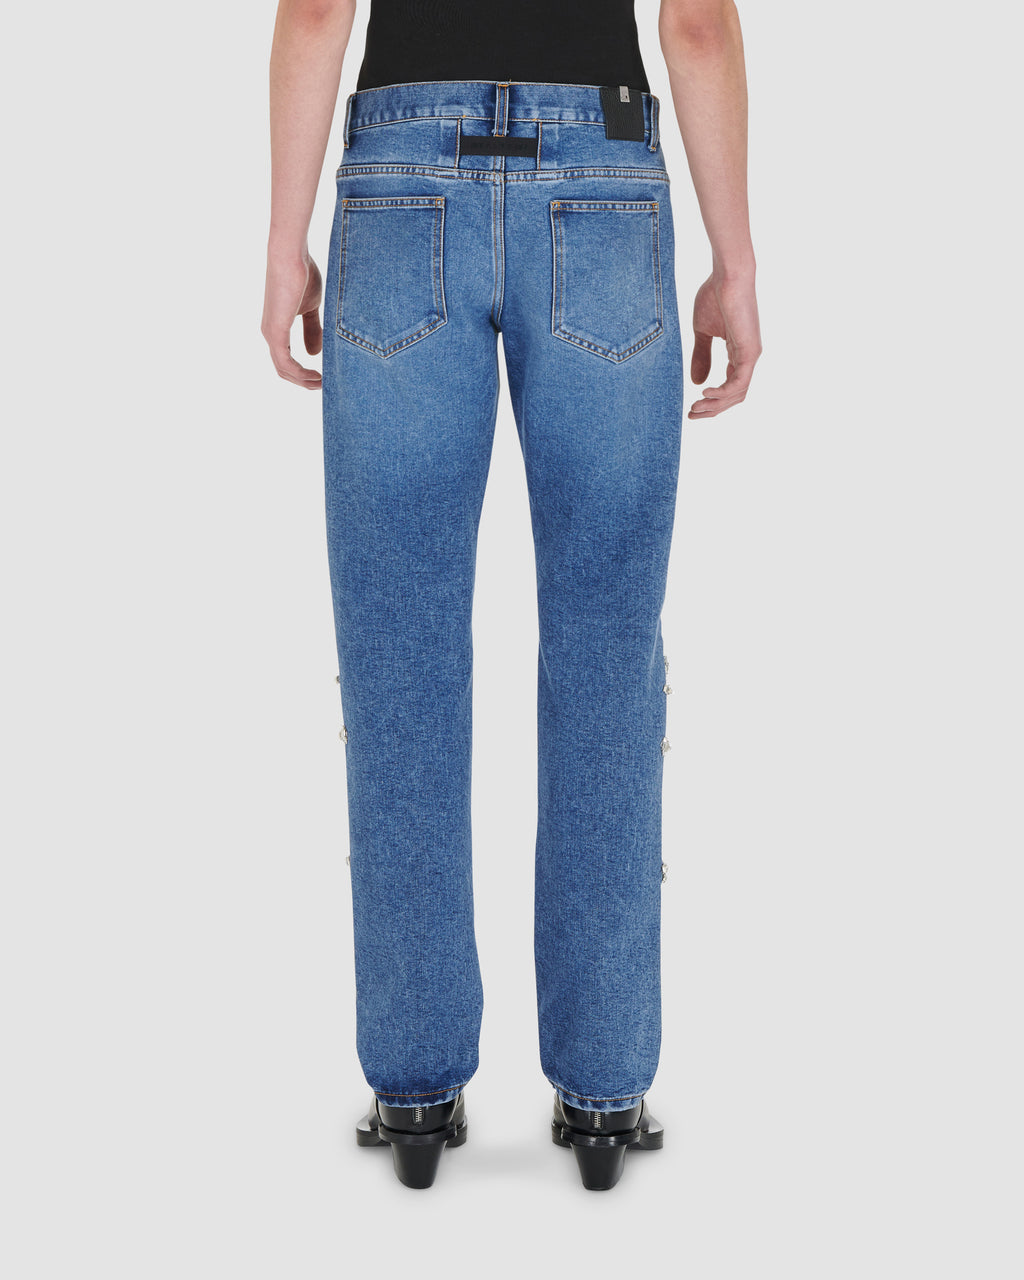 1017 ALYX 9SM | 6 POCKET MENS JEANS WITH DIAMANTI RUNWAY MADE TO ORDER | Pants | FW20 PRE-ORDER